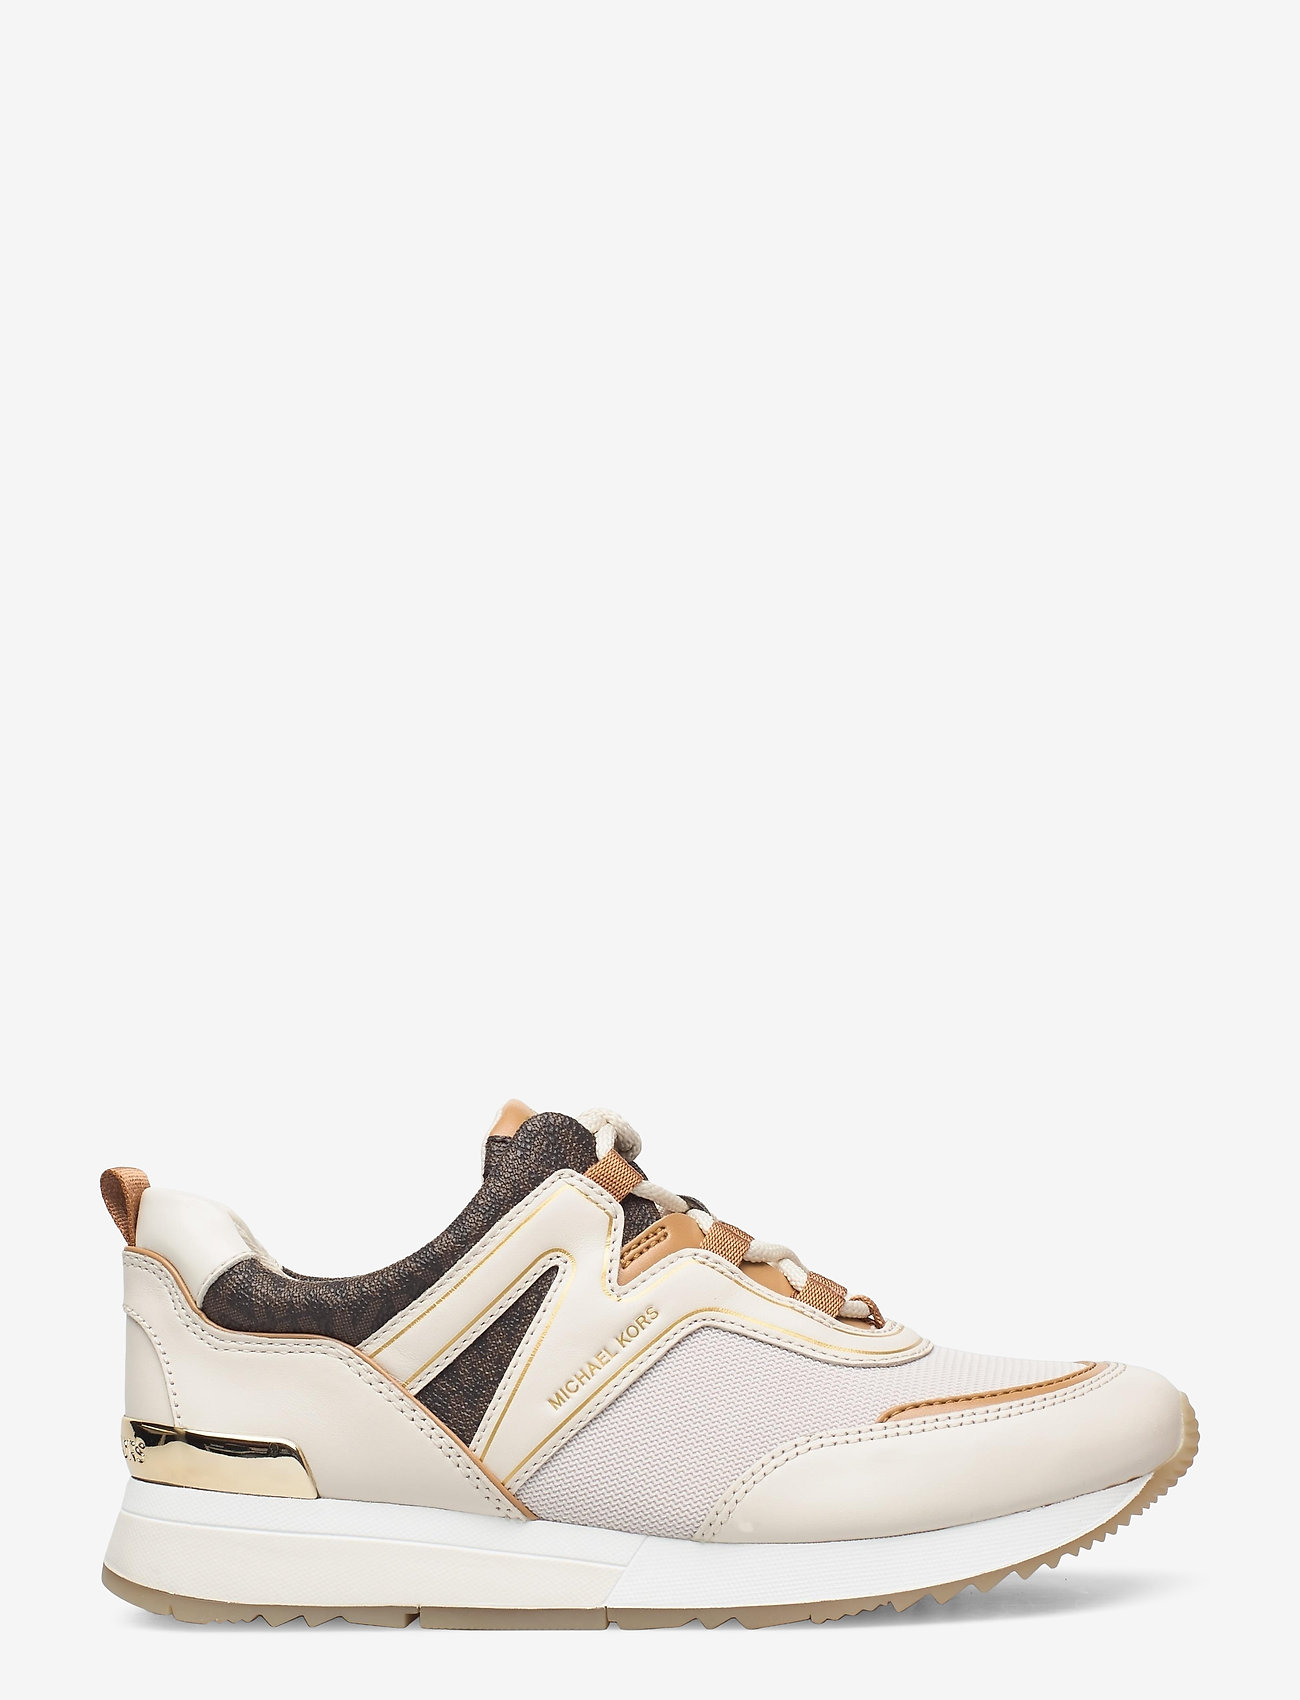 Michael Kors Shoes - PIPPIN TRAINER - low top sneakers - cream multi - 1